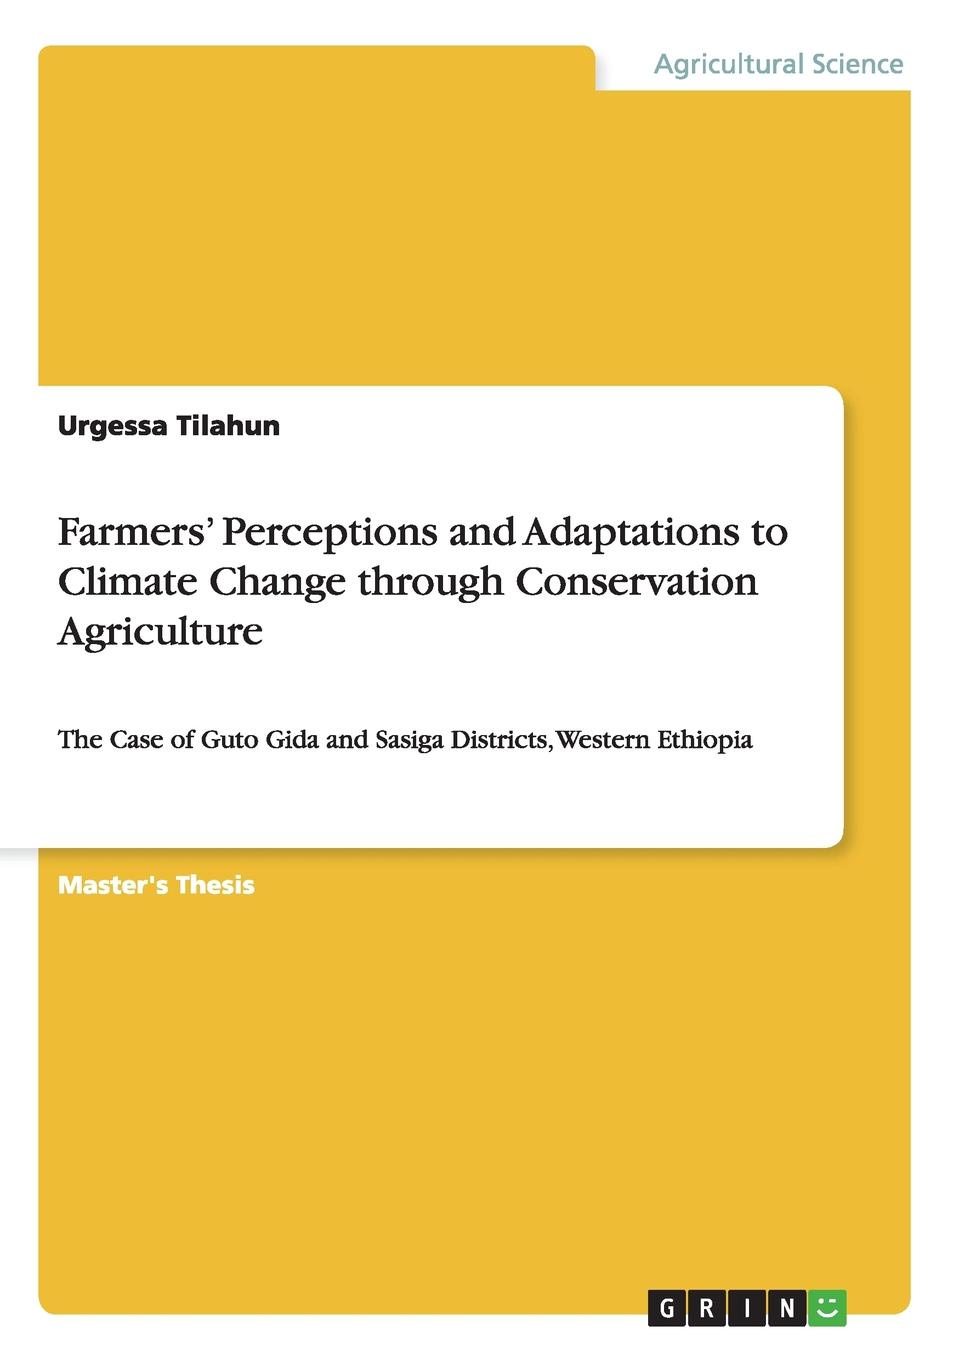 Urgessa Tilahun Farmers. Perceptions and Adaptations to Climate Change through Conservation Agriculture economic adaptation to climate change